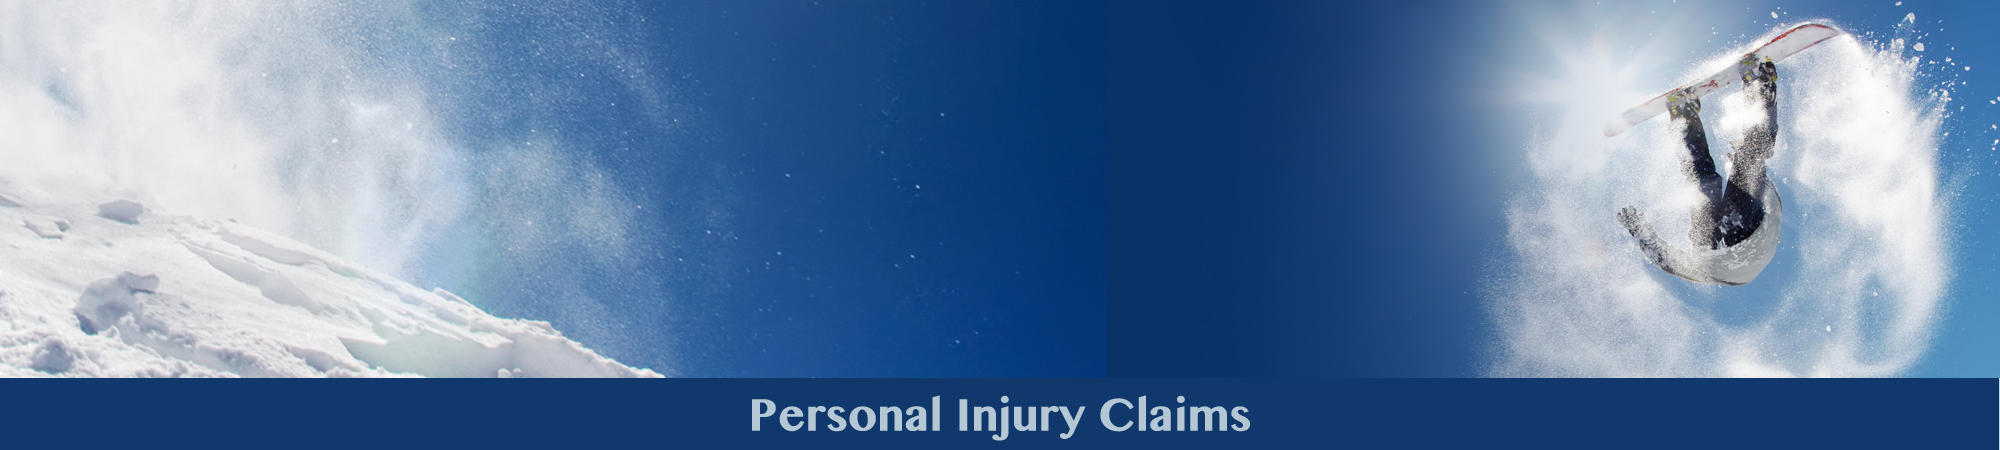 personal injury and accident claims